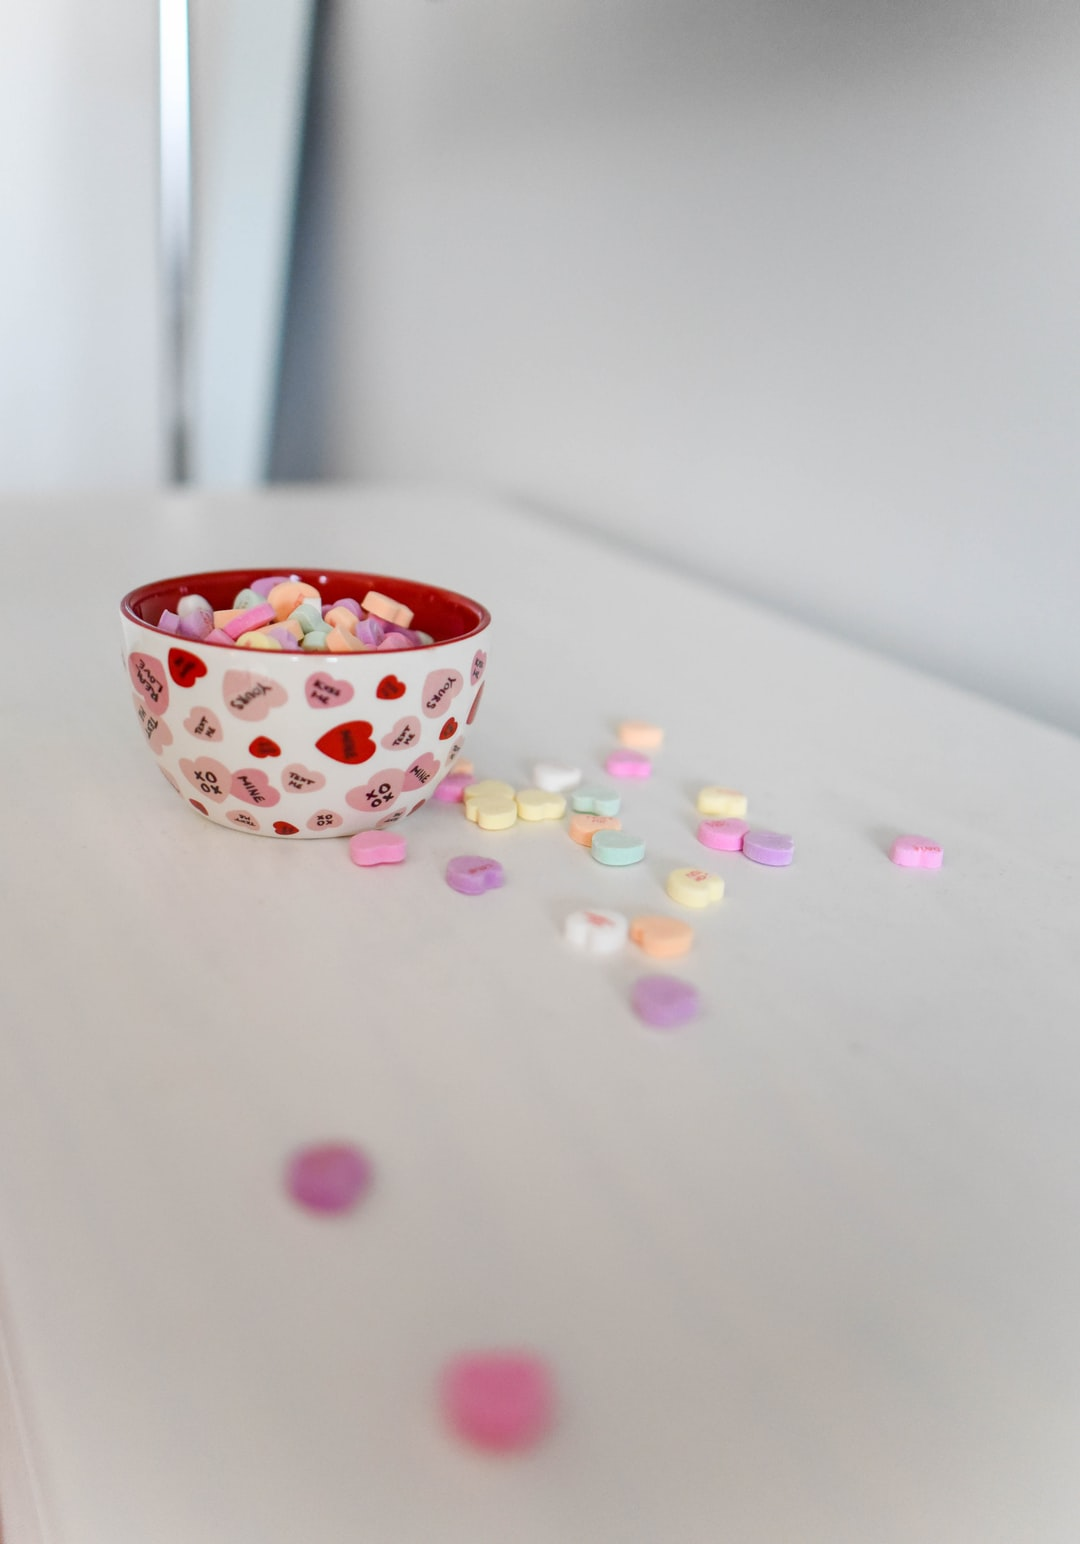 100+ Love Background Pictures | Download Free Images on Unsplash